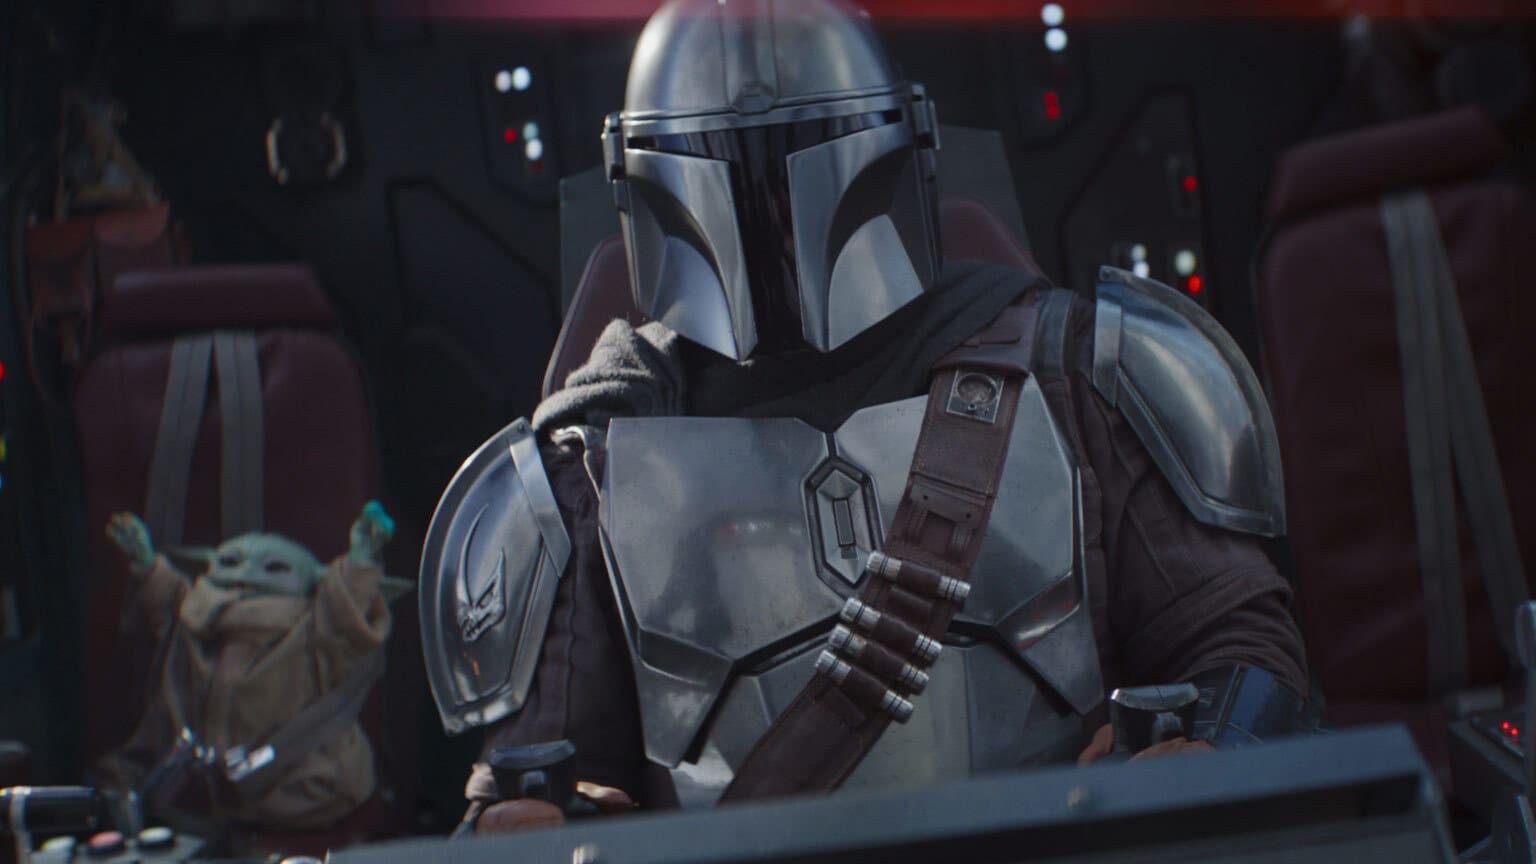 The Mandalorian Receives Golden Globe Nomination for Best TV Drama